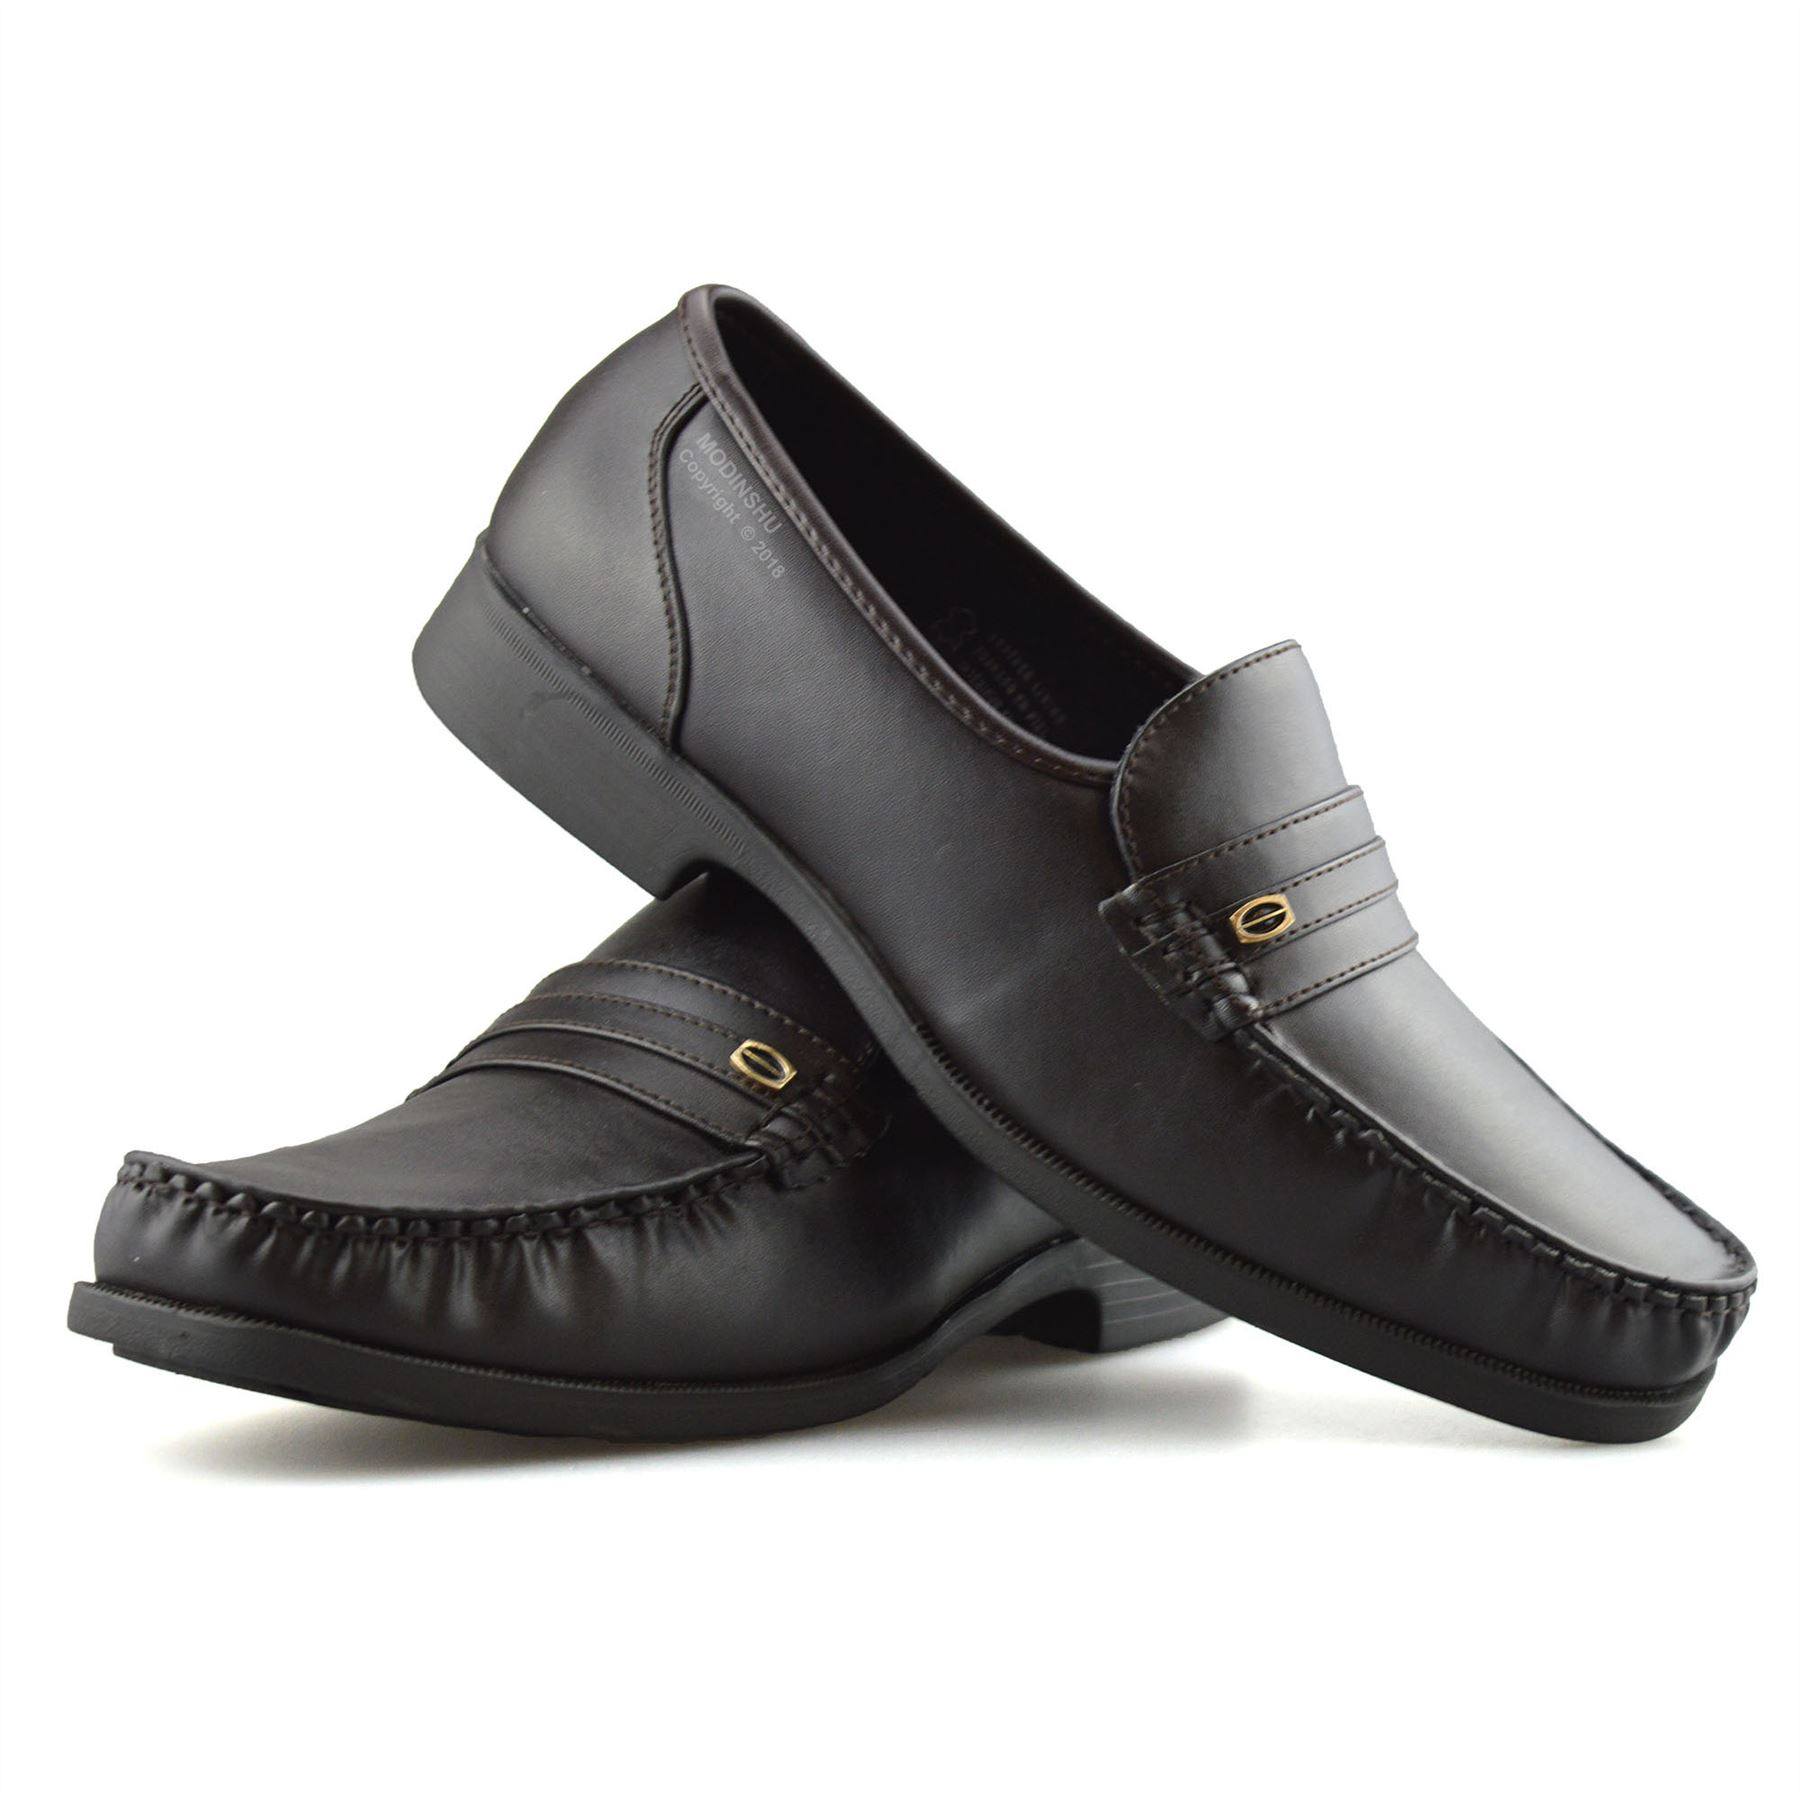 Mens-New-Slip-On-Casual-Smart-Memory-Foam-Mocassin-Designer-Loafers-Shoes-Size thumbnail 25